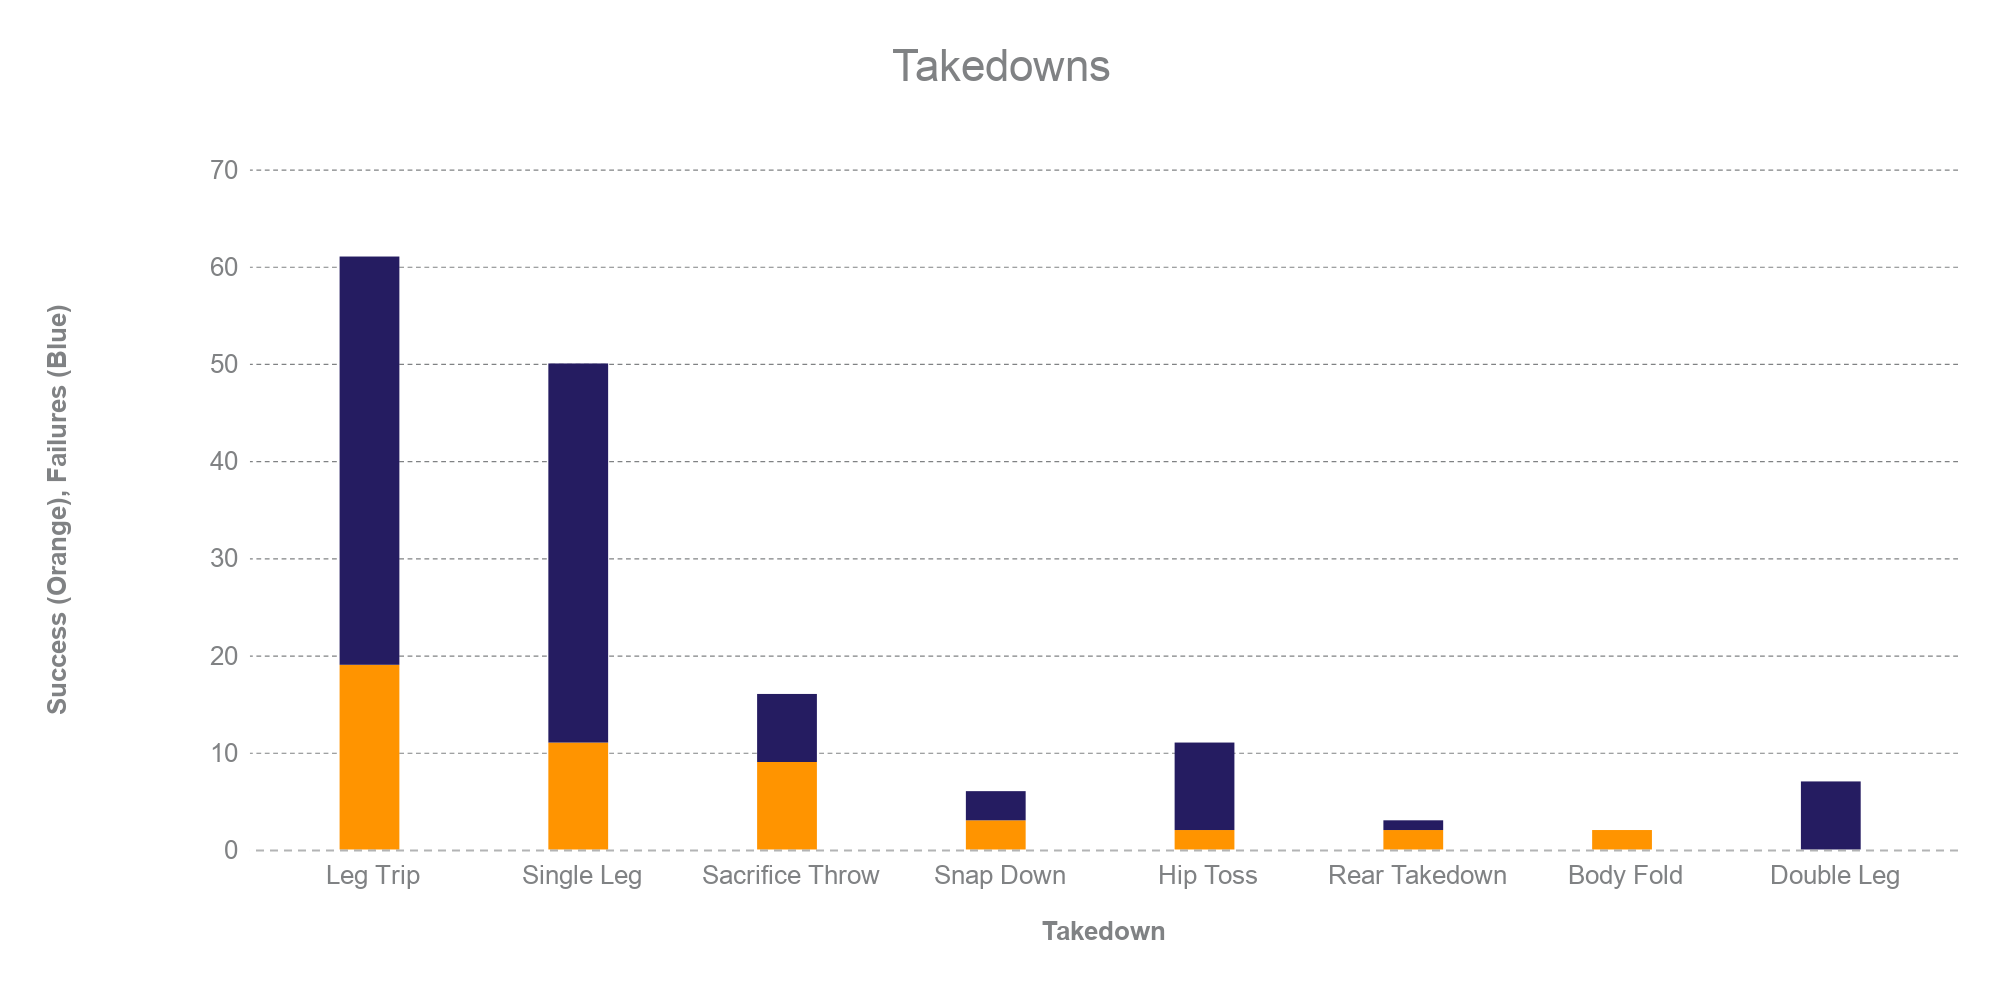 Orange is successful takedowns, blue is failed takedowns